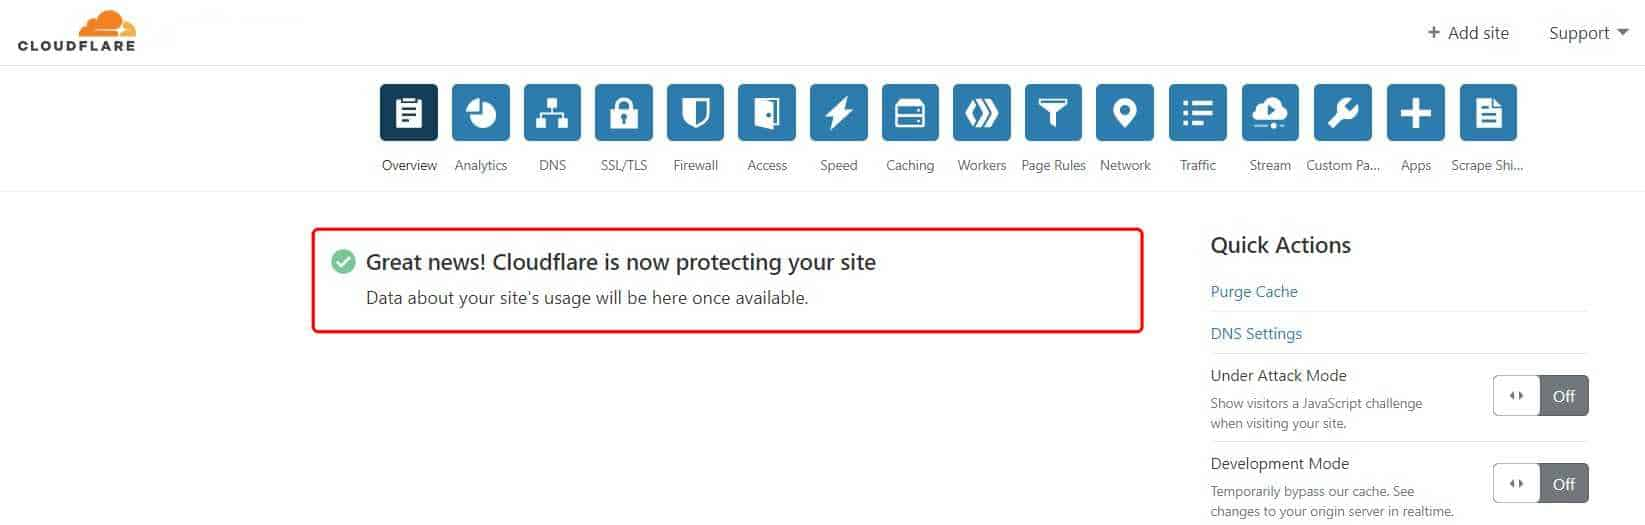 Great news! Cloudflare is now protecting your site